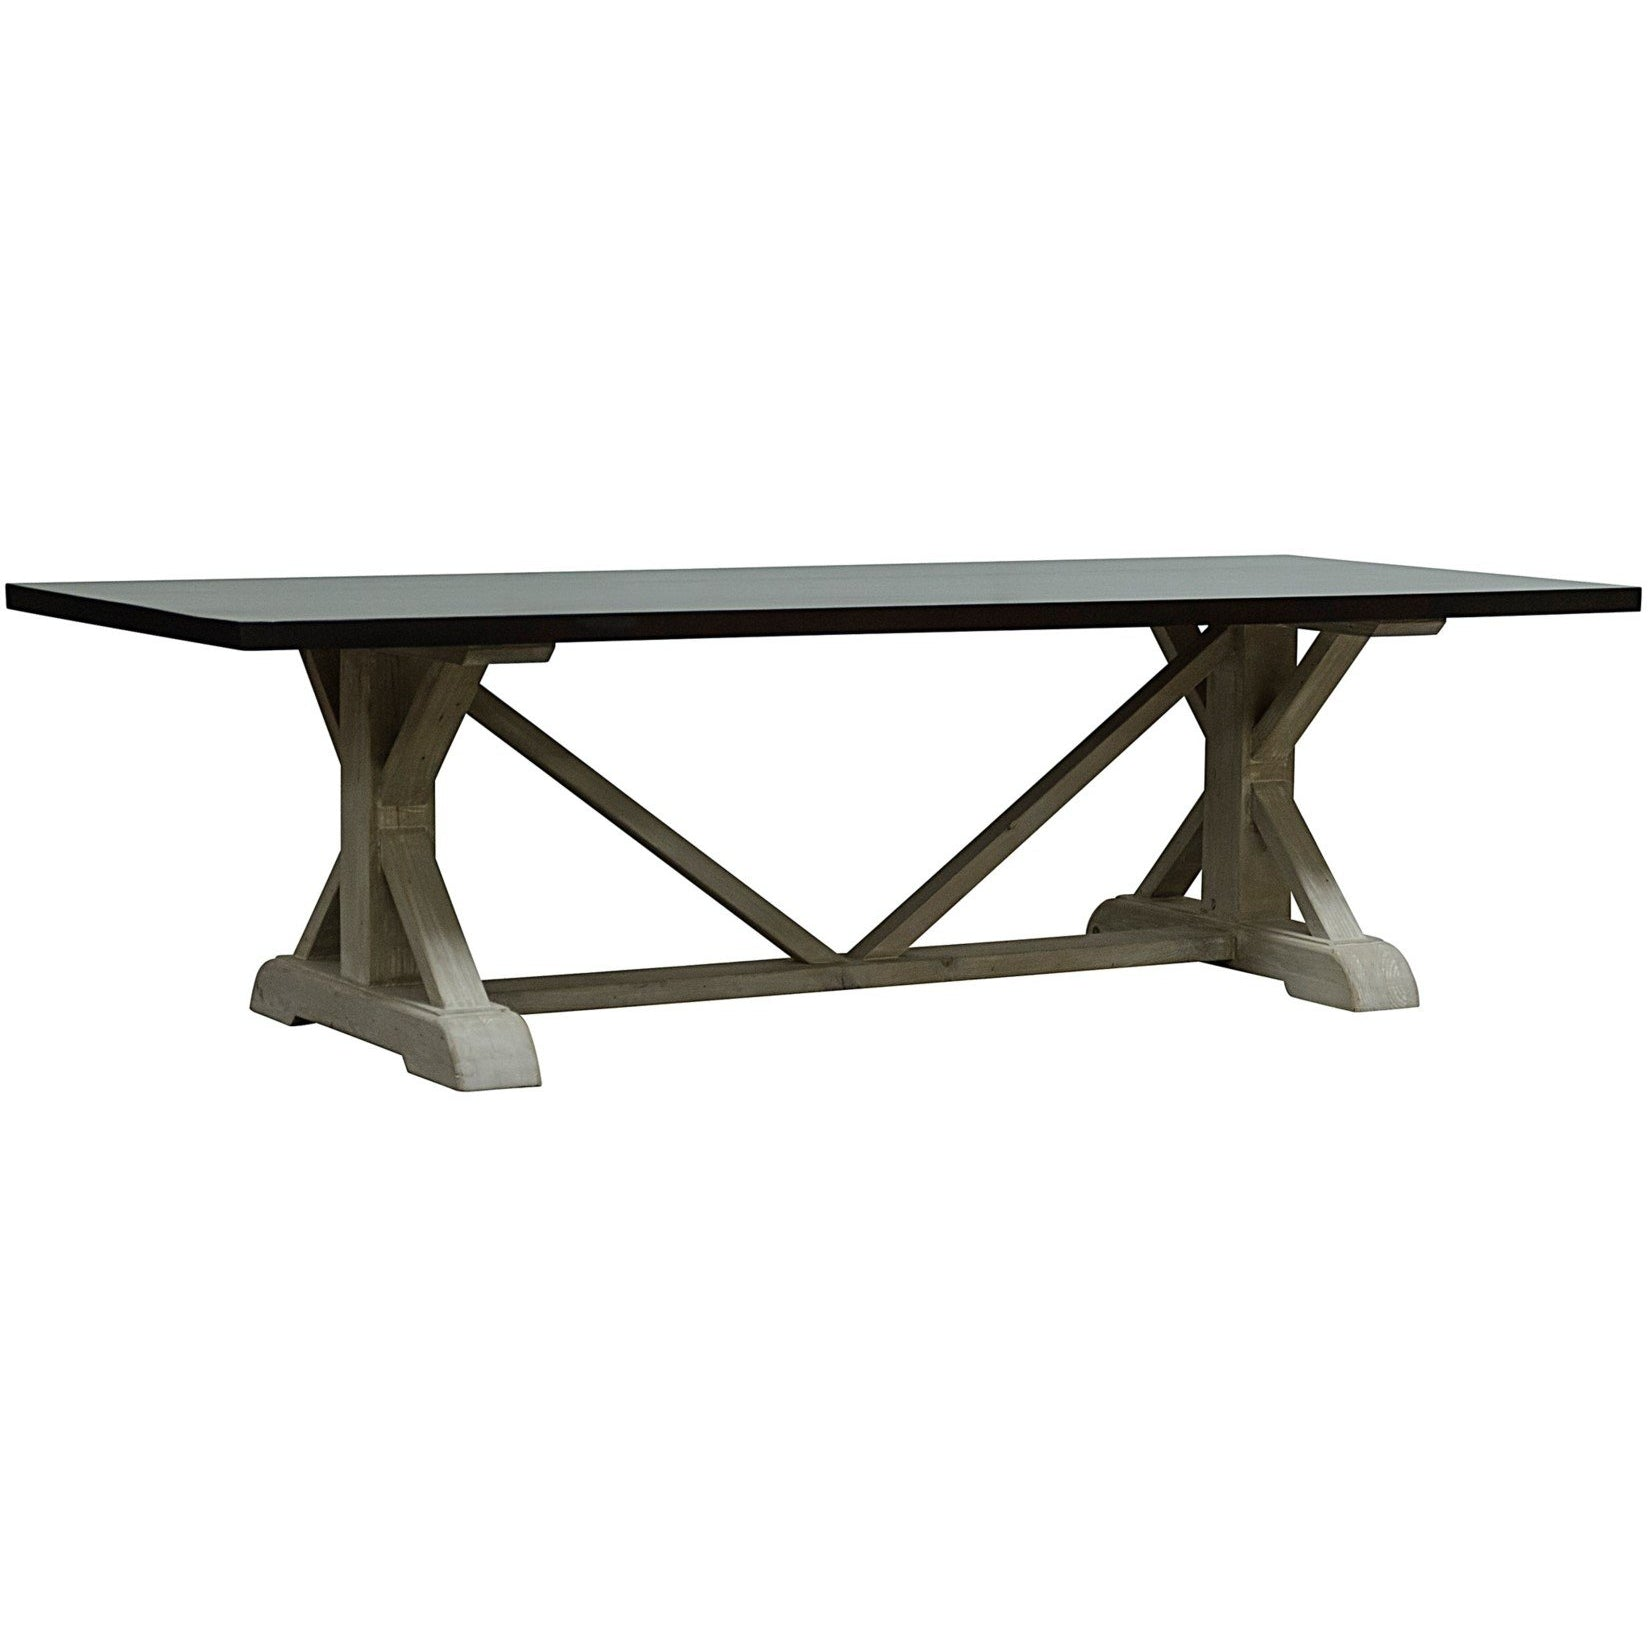 CFC Furniture Andreas Dining table, 9 ft-CFC Furniture-Blue Hand Home